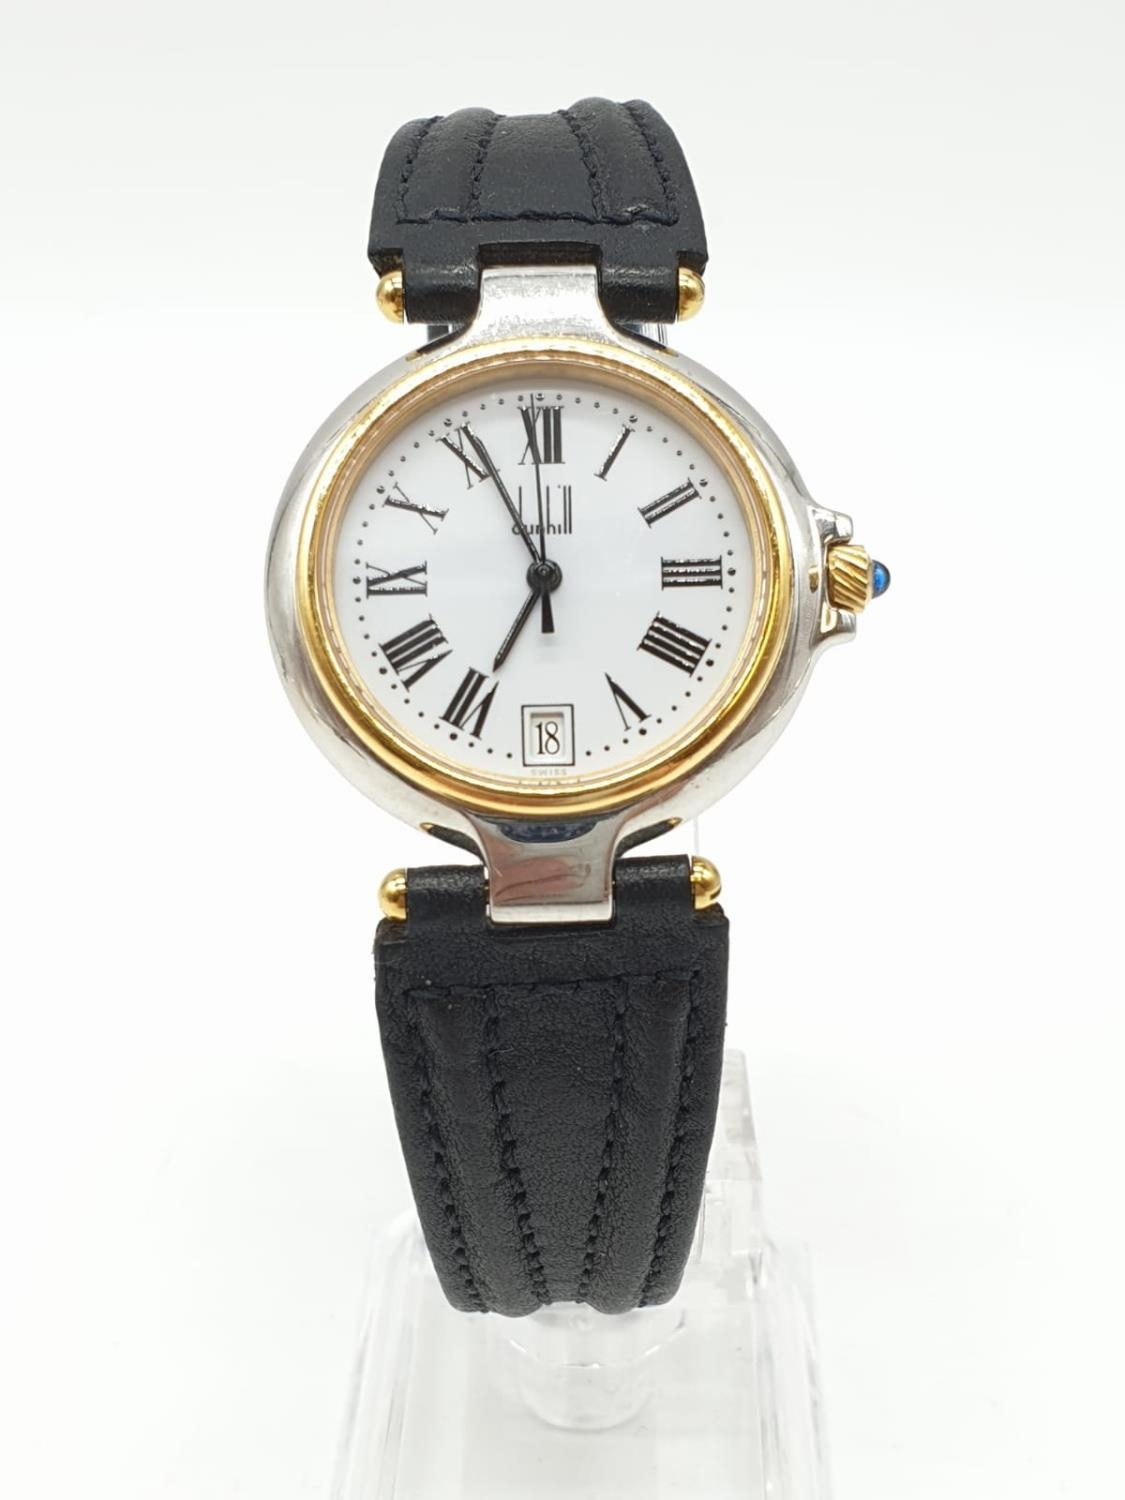 Dunhill Unisex Quartz Watch. New and Unworn. White Face with Roman Numerals.